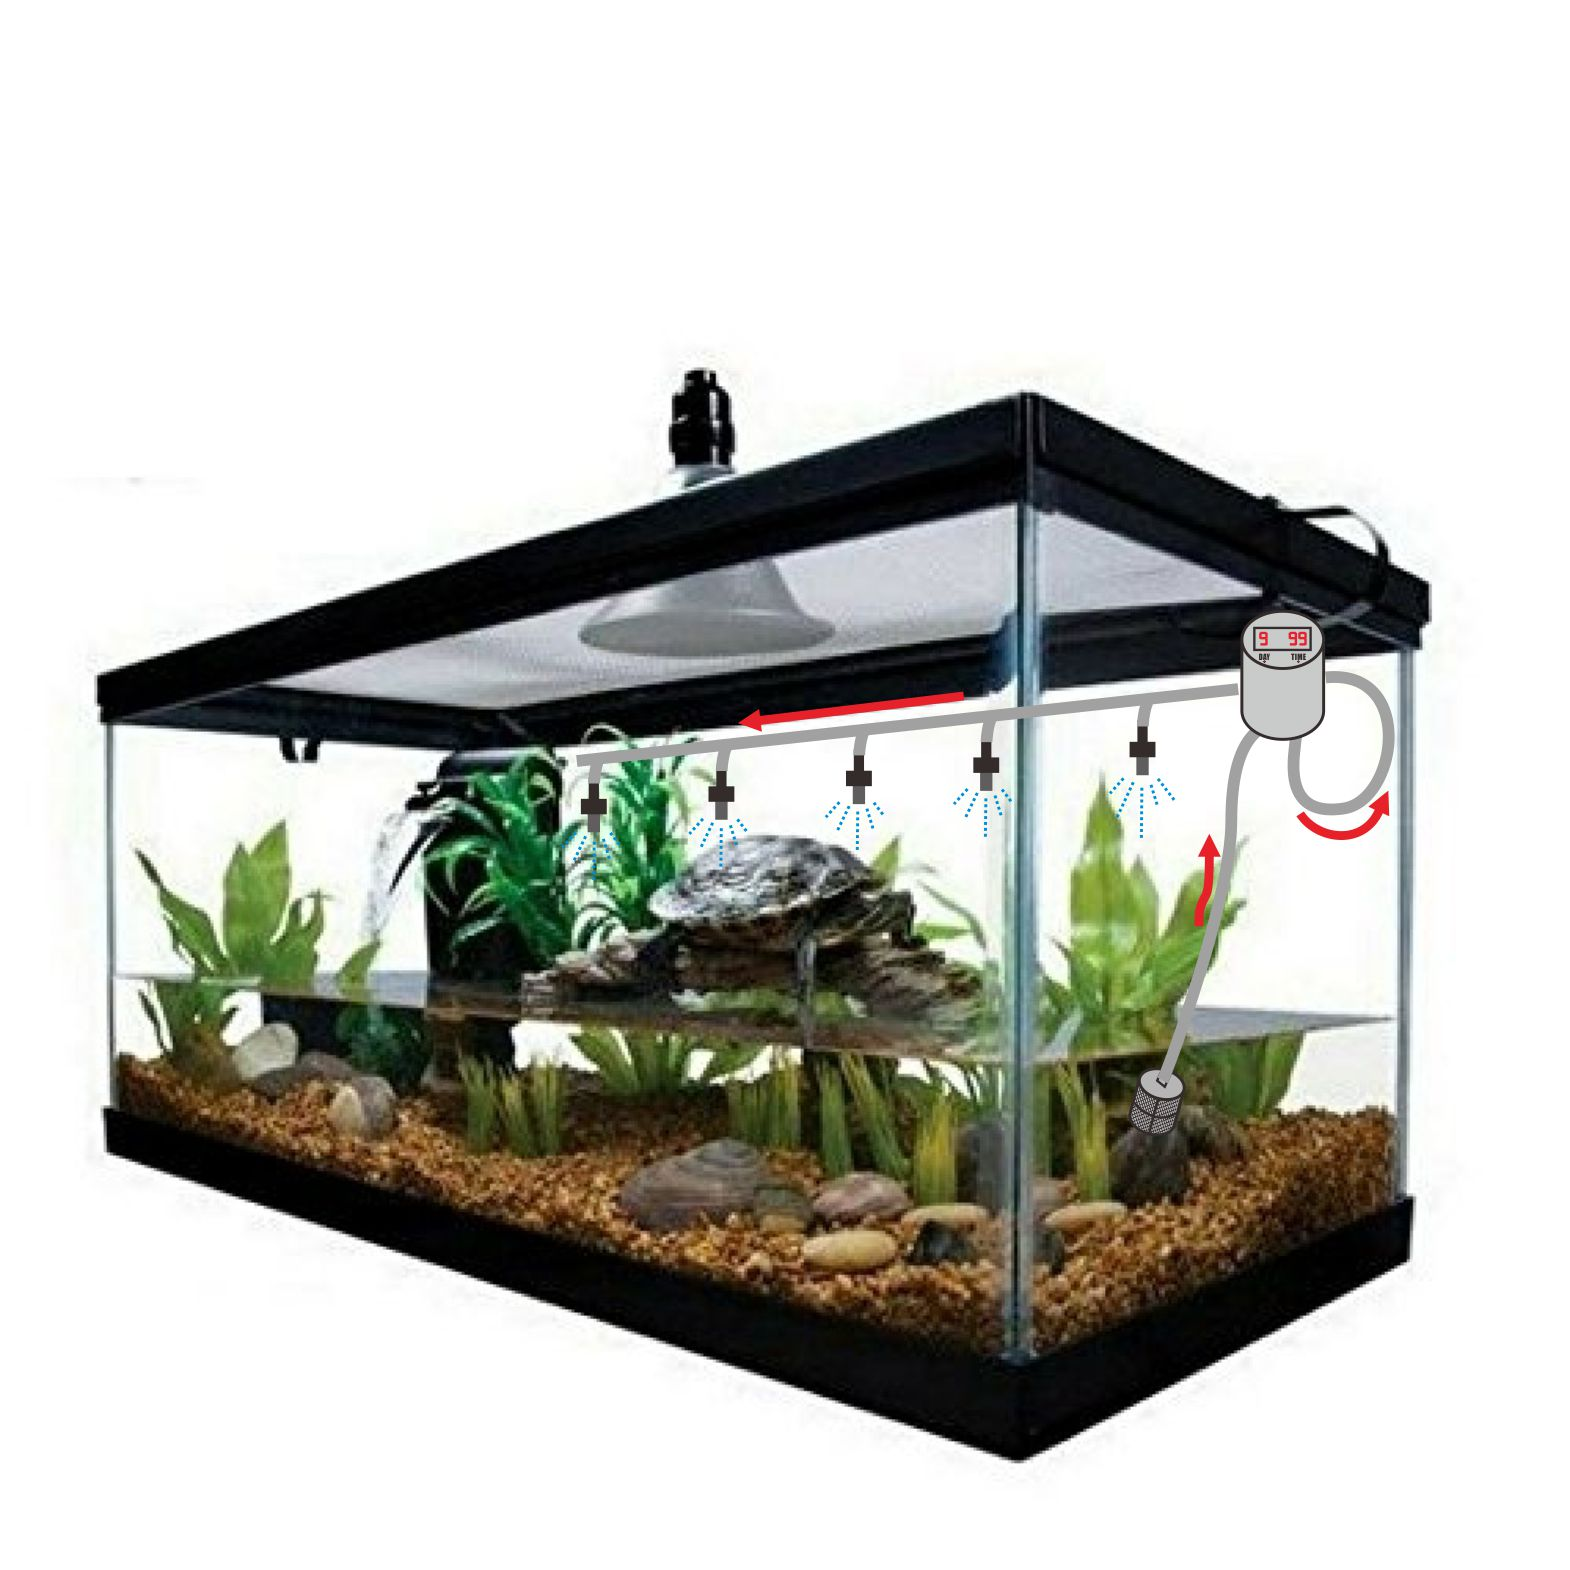 Reptile Rain Forest System DB-001